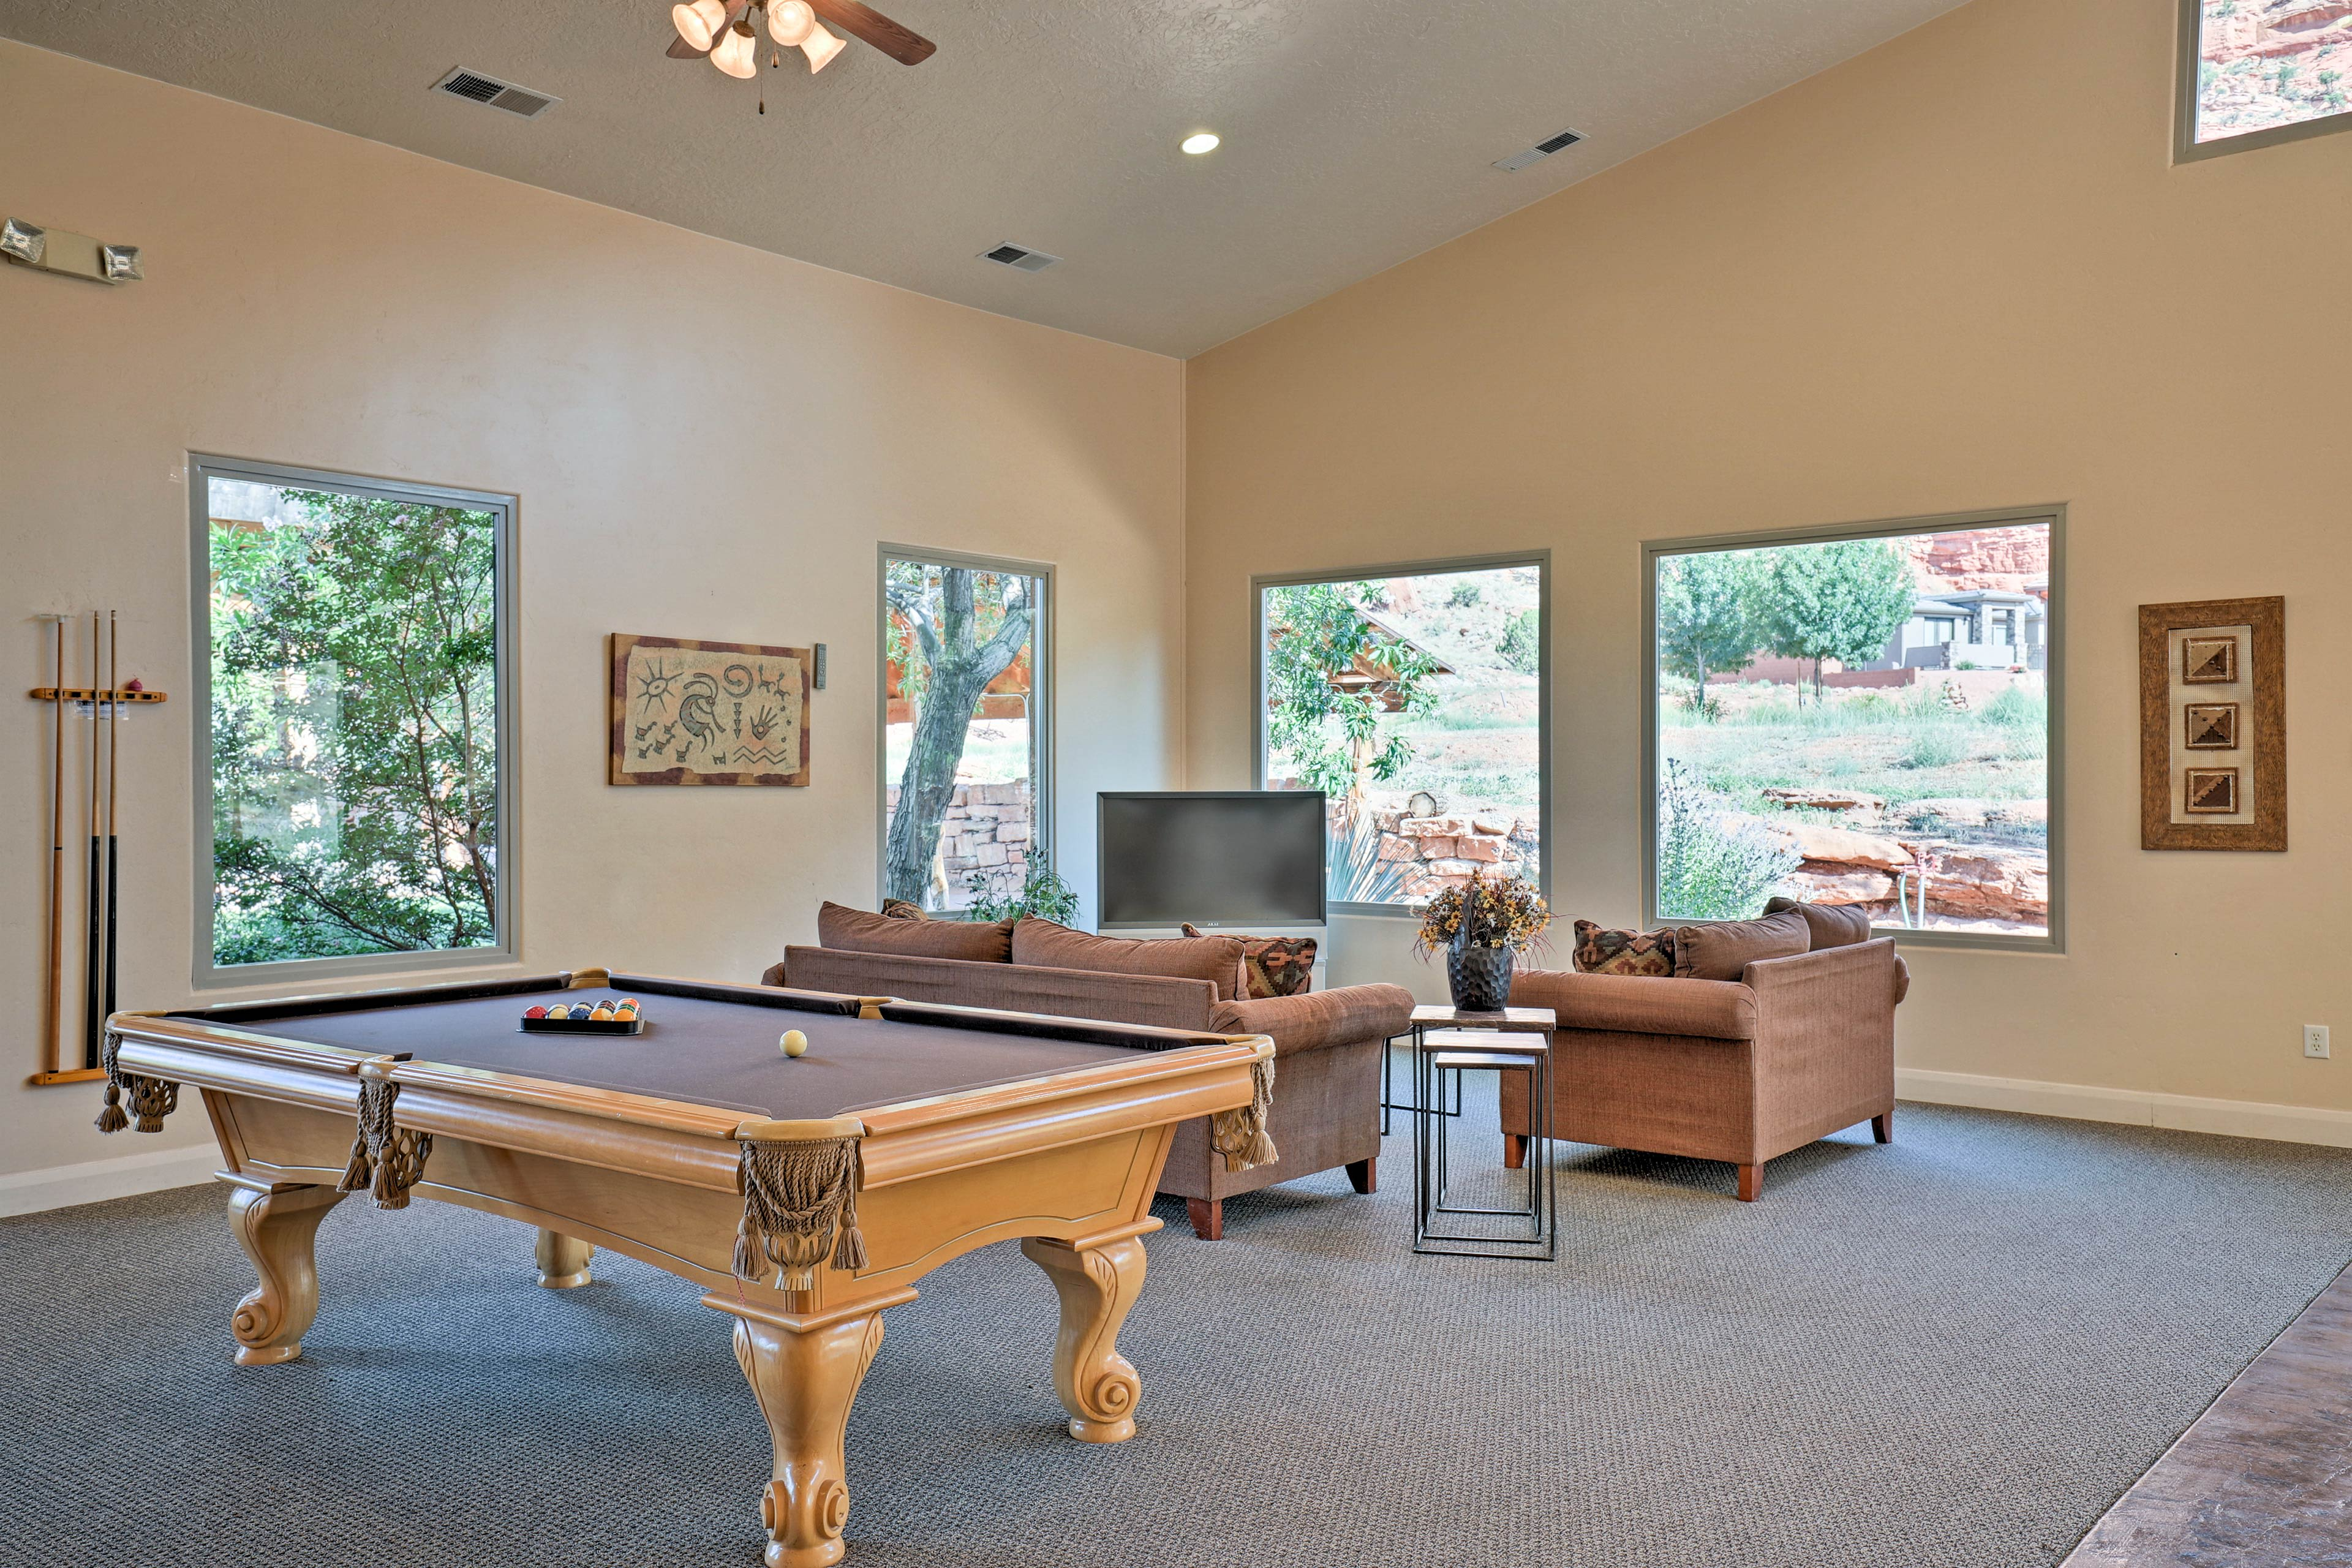 Challenge the kiddos to a friendly game of pool in the game room!